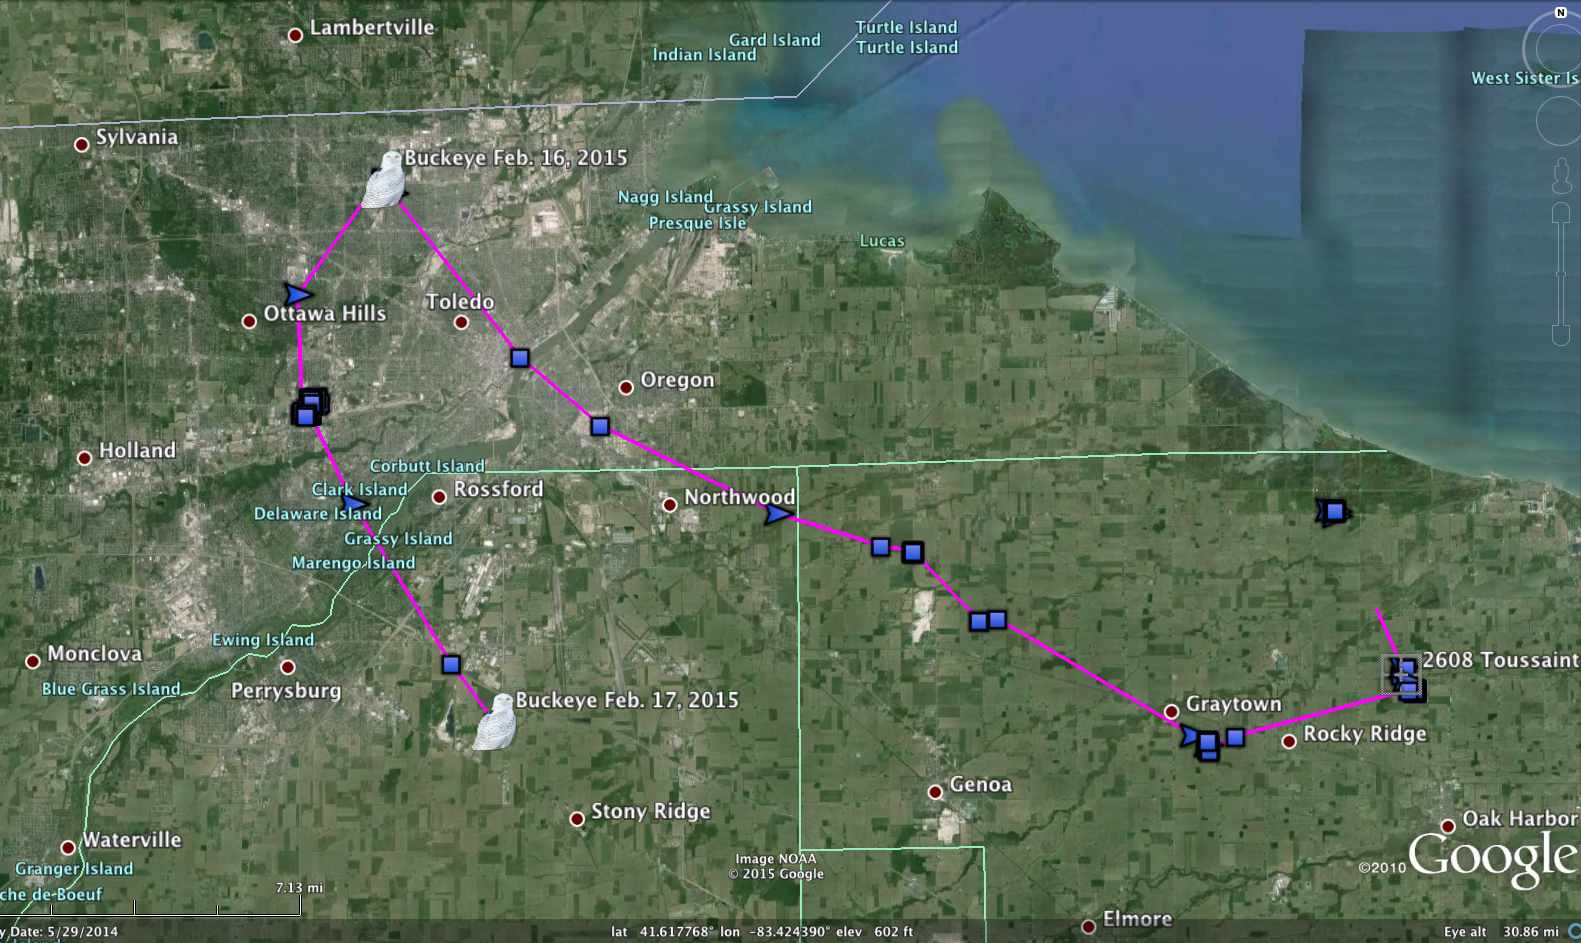 Buckeye's almost-to-Michigan-and-back route over the past couple of days. (©Project SNOWstorm and Google Earth)